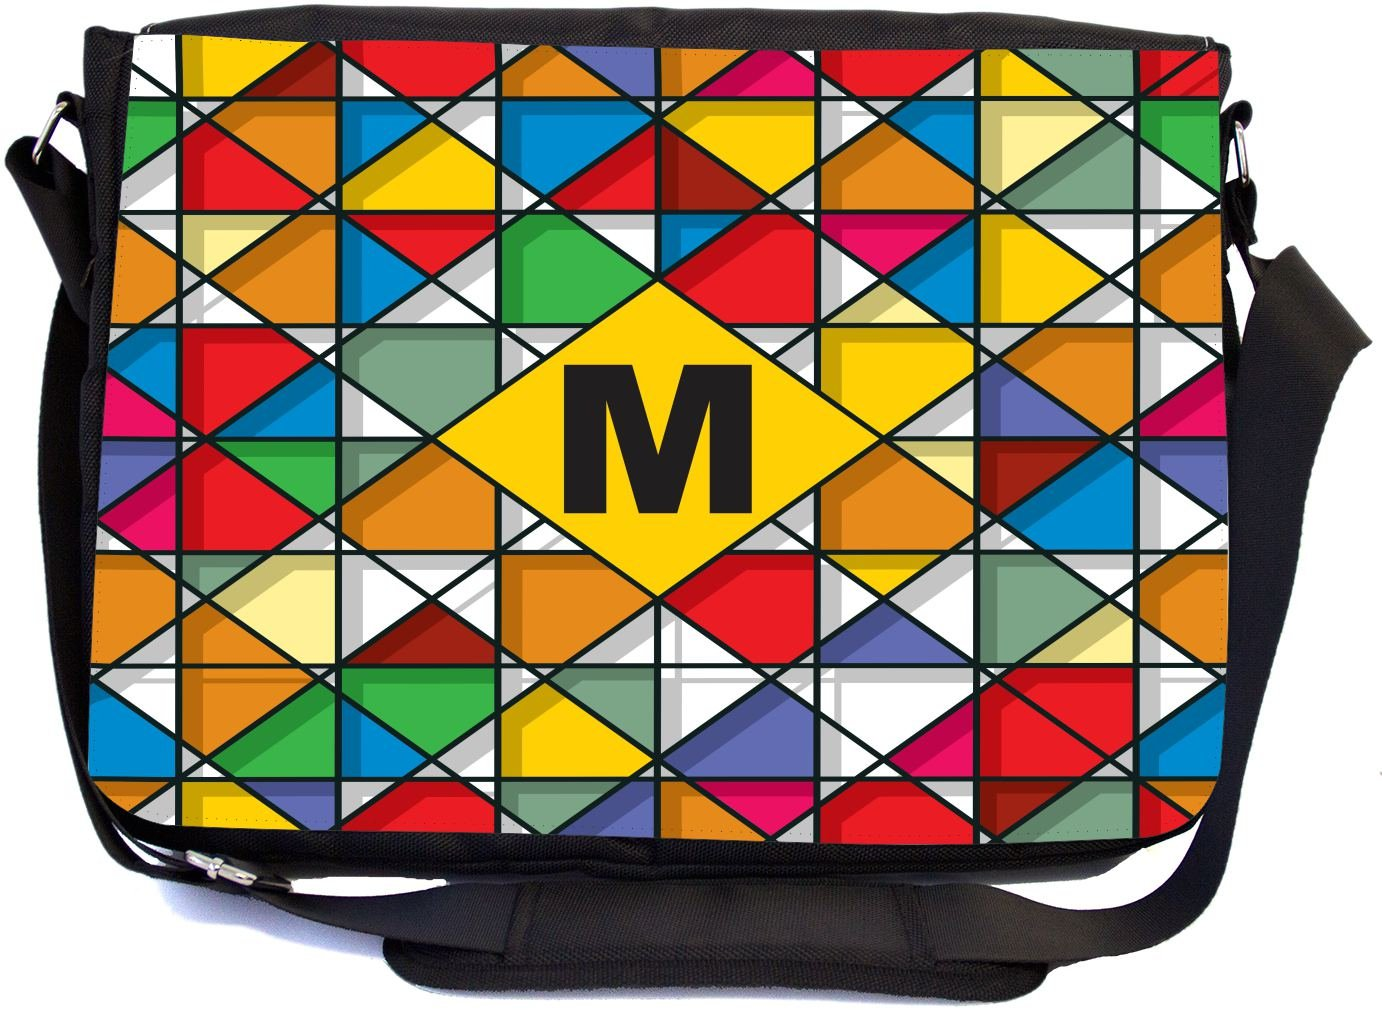 Rikki Knight Letter M Monogram Vibrant Colors Stained Glass Design Design Multifunctional Messenger Bag - School Bag - Laptop Bag - Includes Matching Compact Mirror